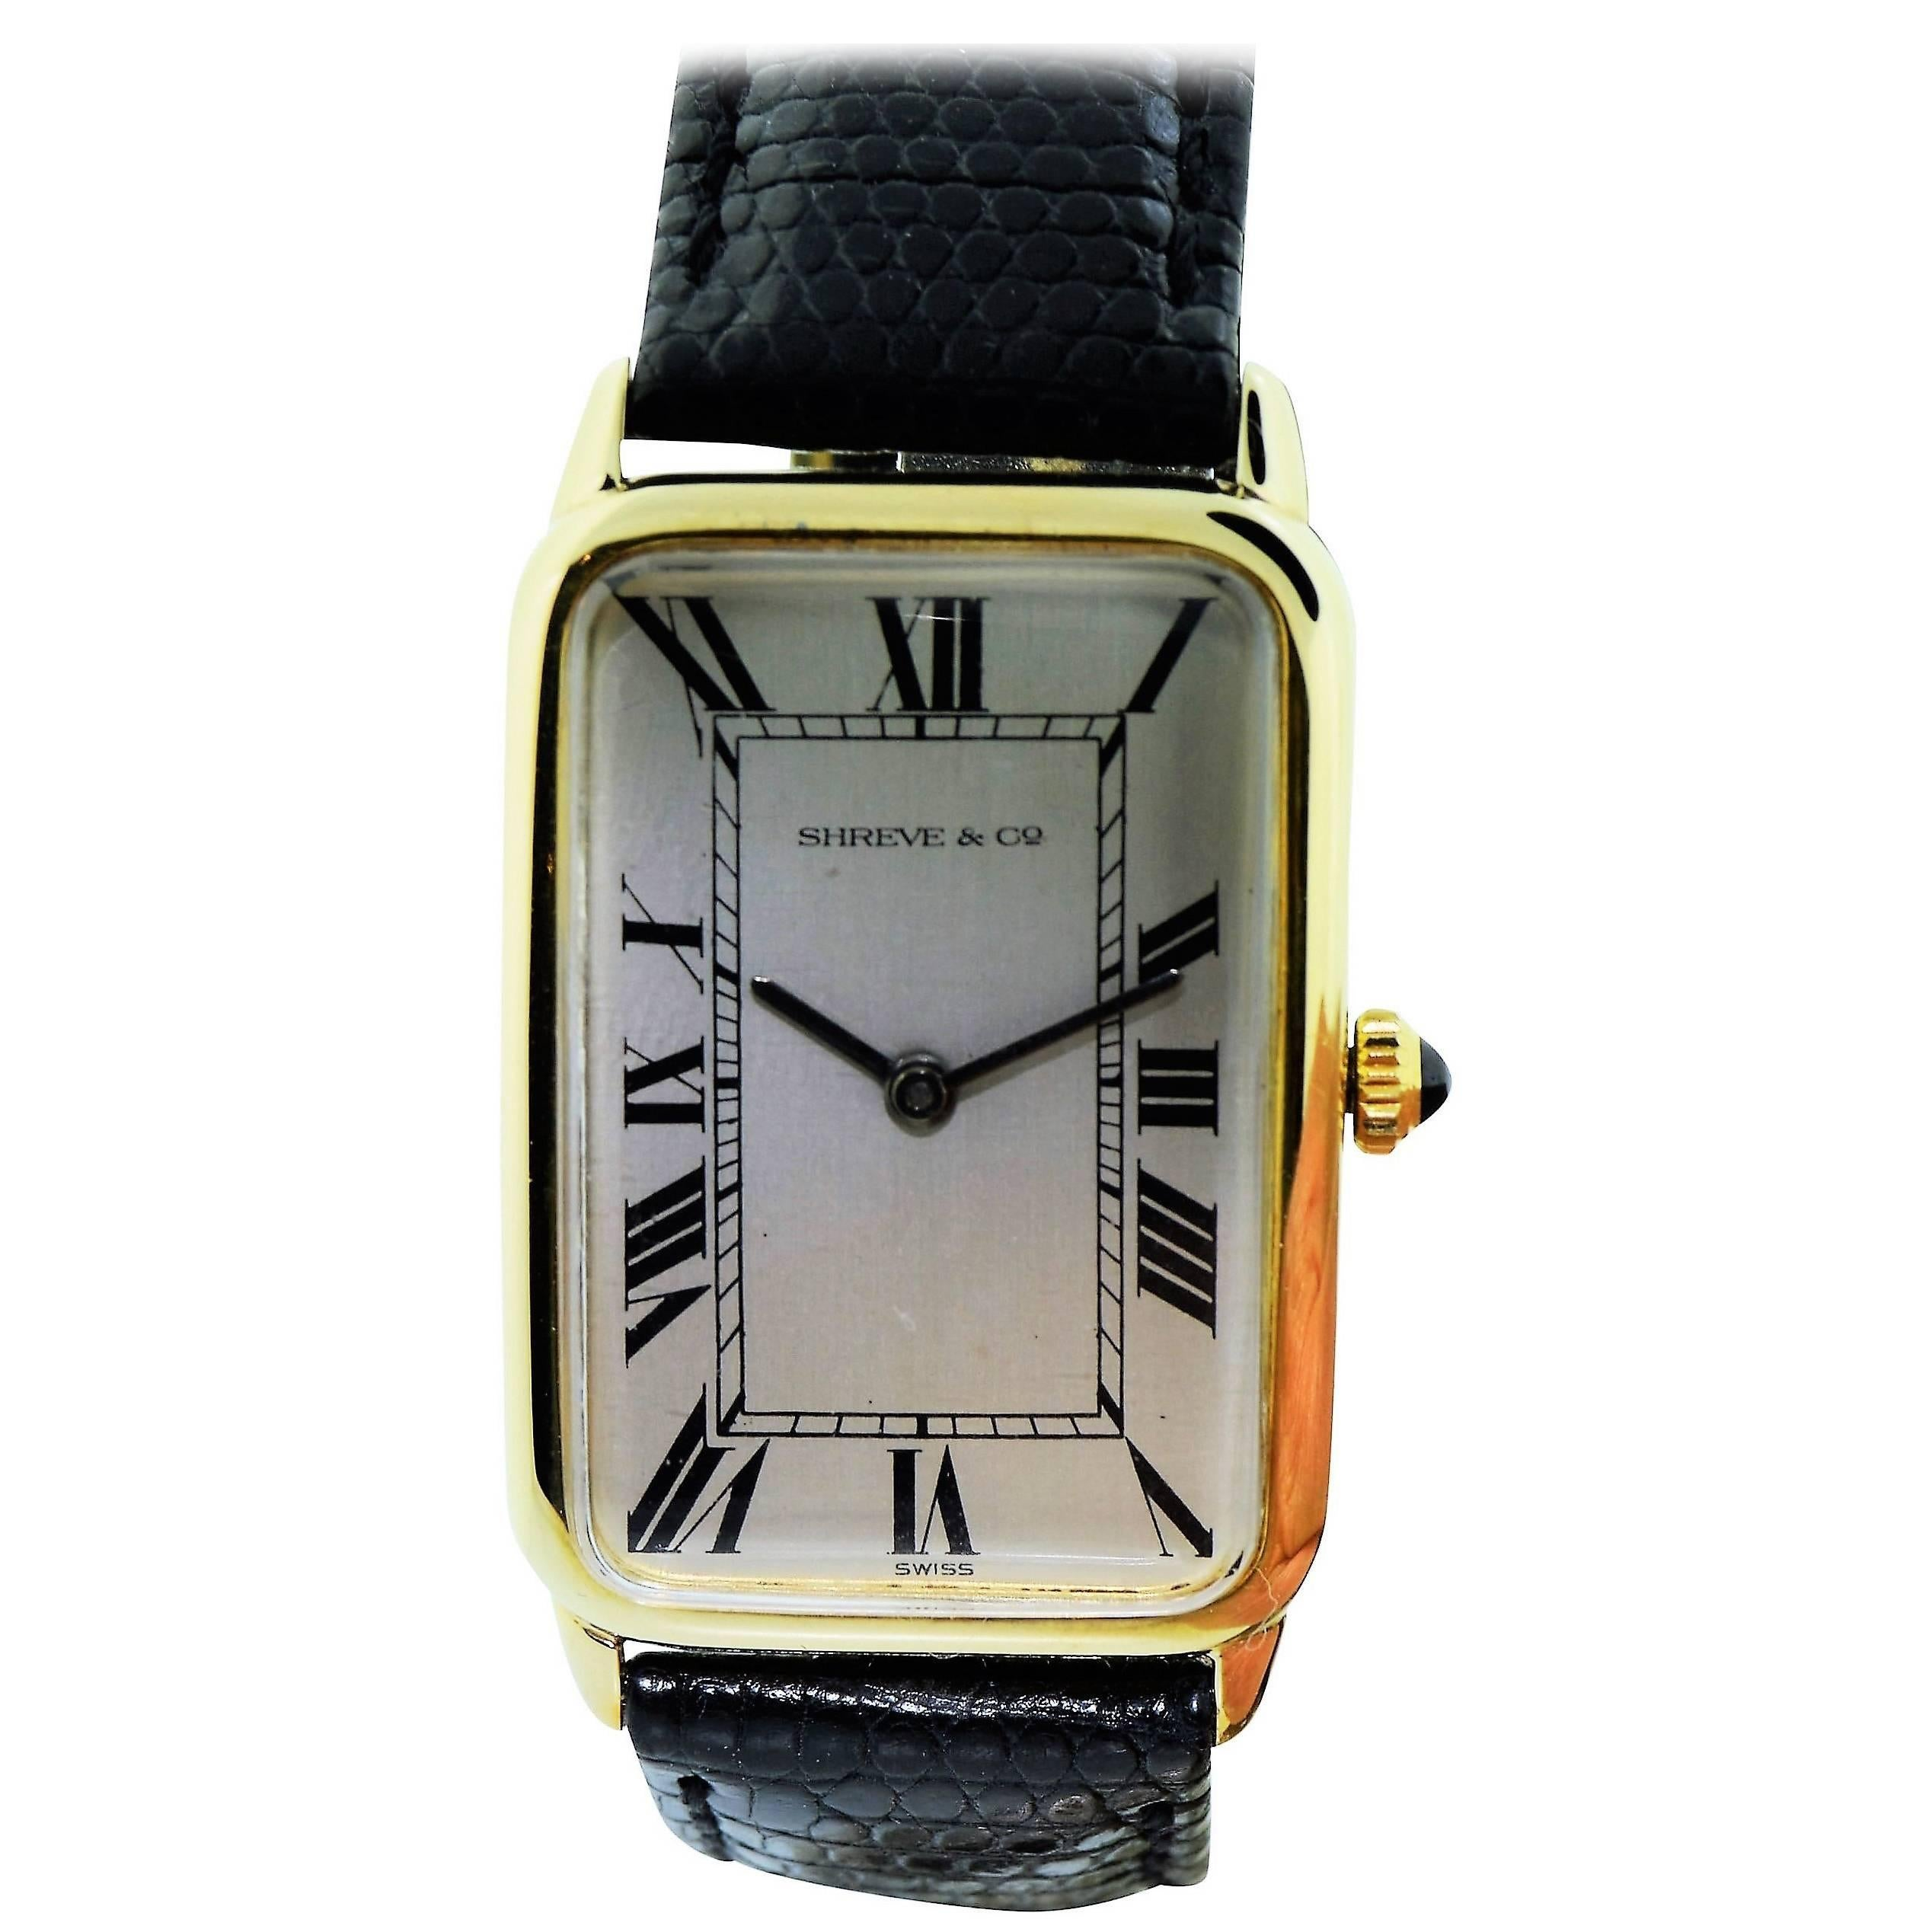 Concord for Shreve & Co. Yellow Gold Manual Wind Watch